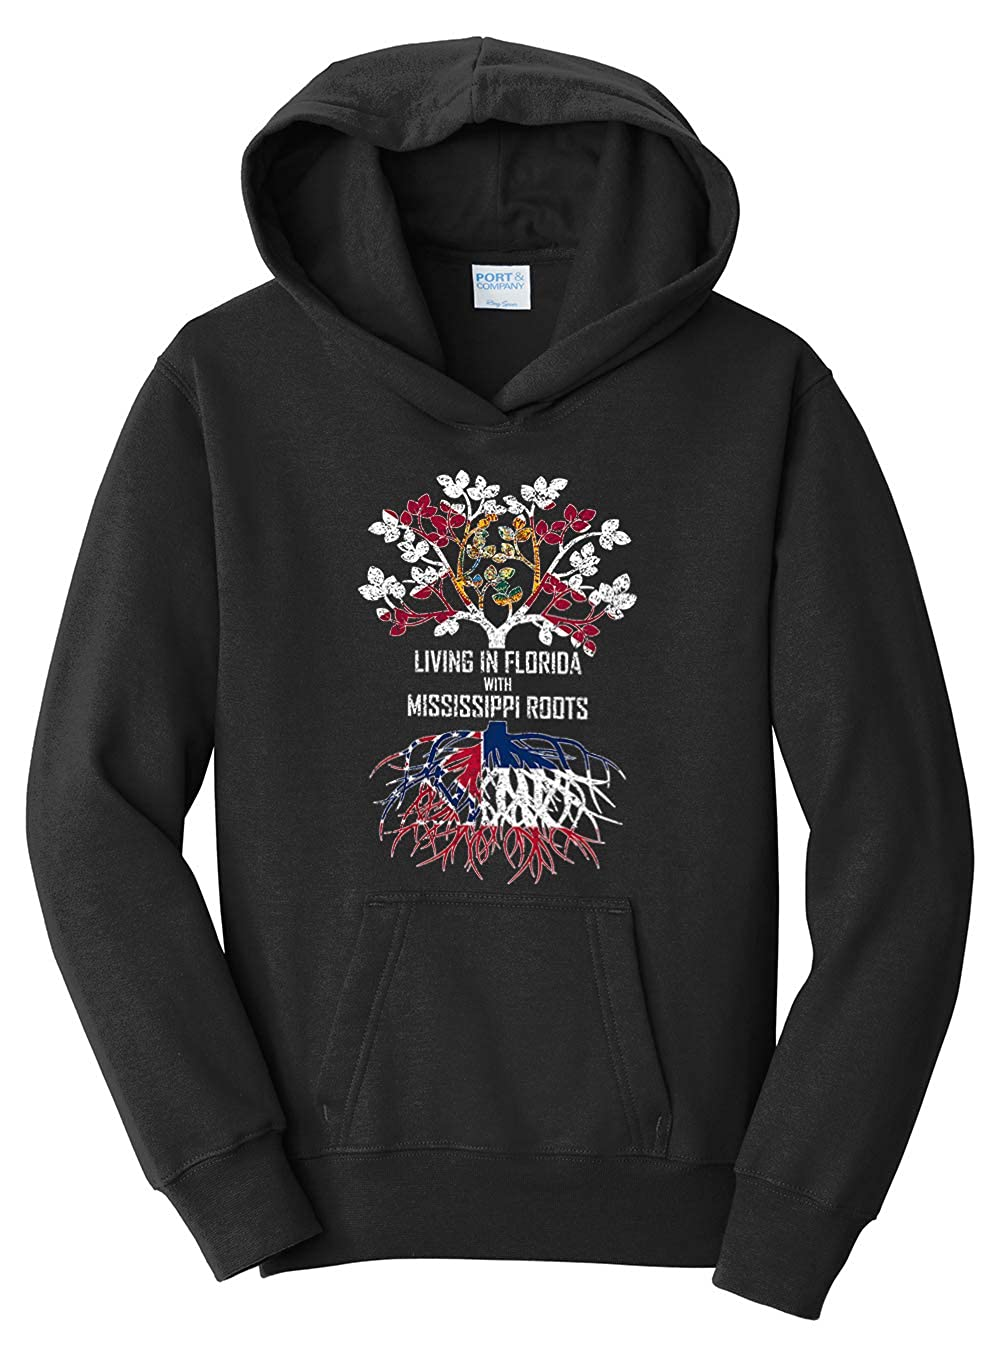 Tenacitee Girls Living in Florida with Mississippi Roots Hooded Sweatshirt